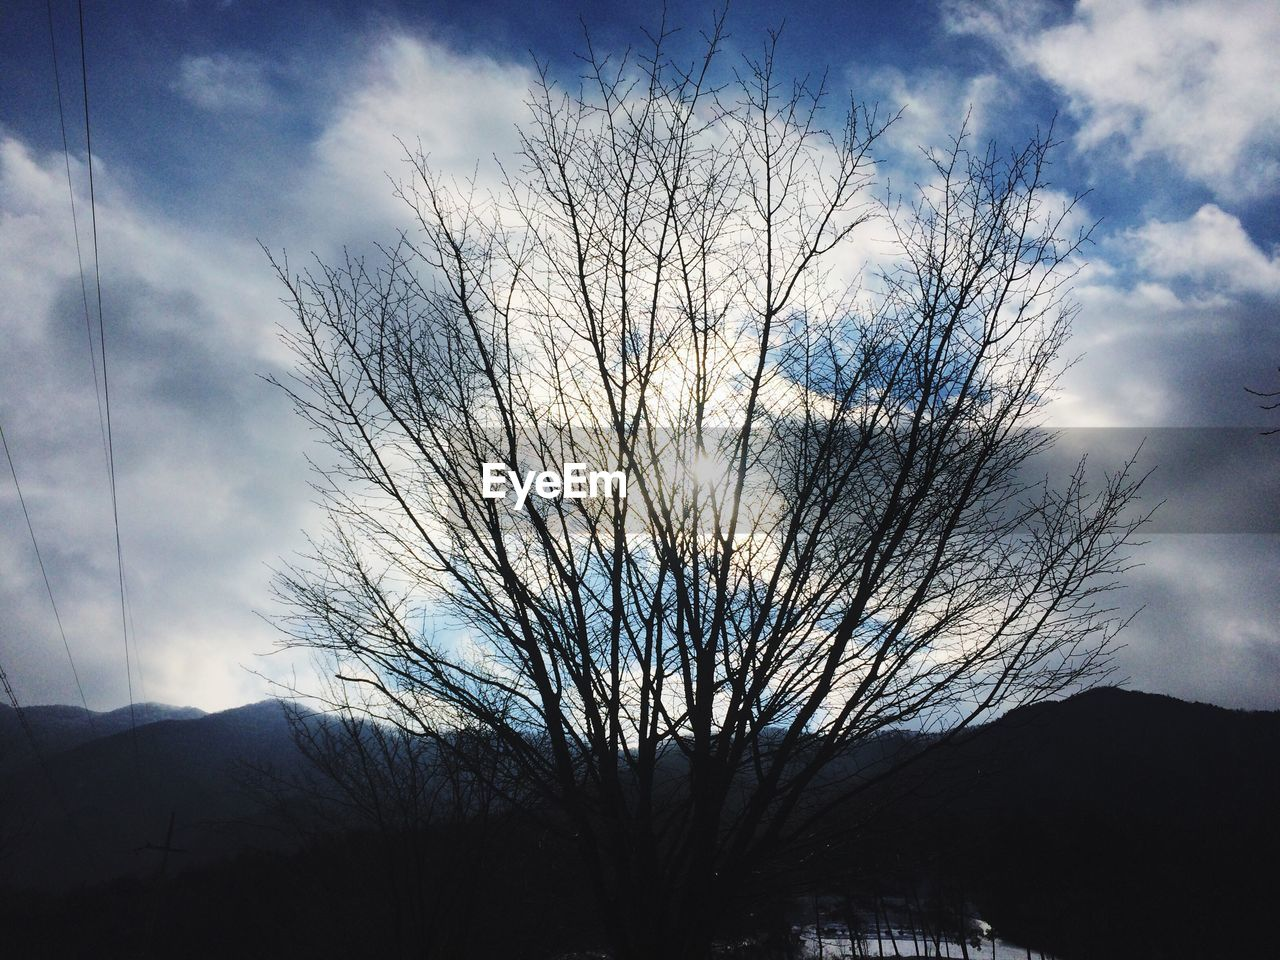 sky, bare tree, tree, tranquility, scenics, cloud - sky, tranquil scene, silhouette, nature, beauty in nature, branch, outdoors, mountain, landscape, day, low angle view, no people, lone